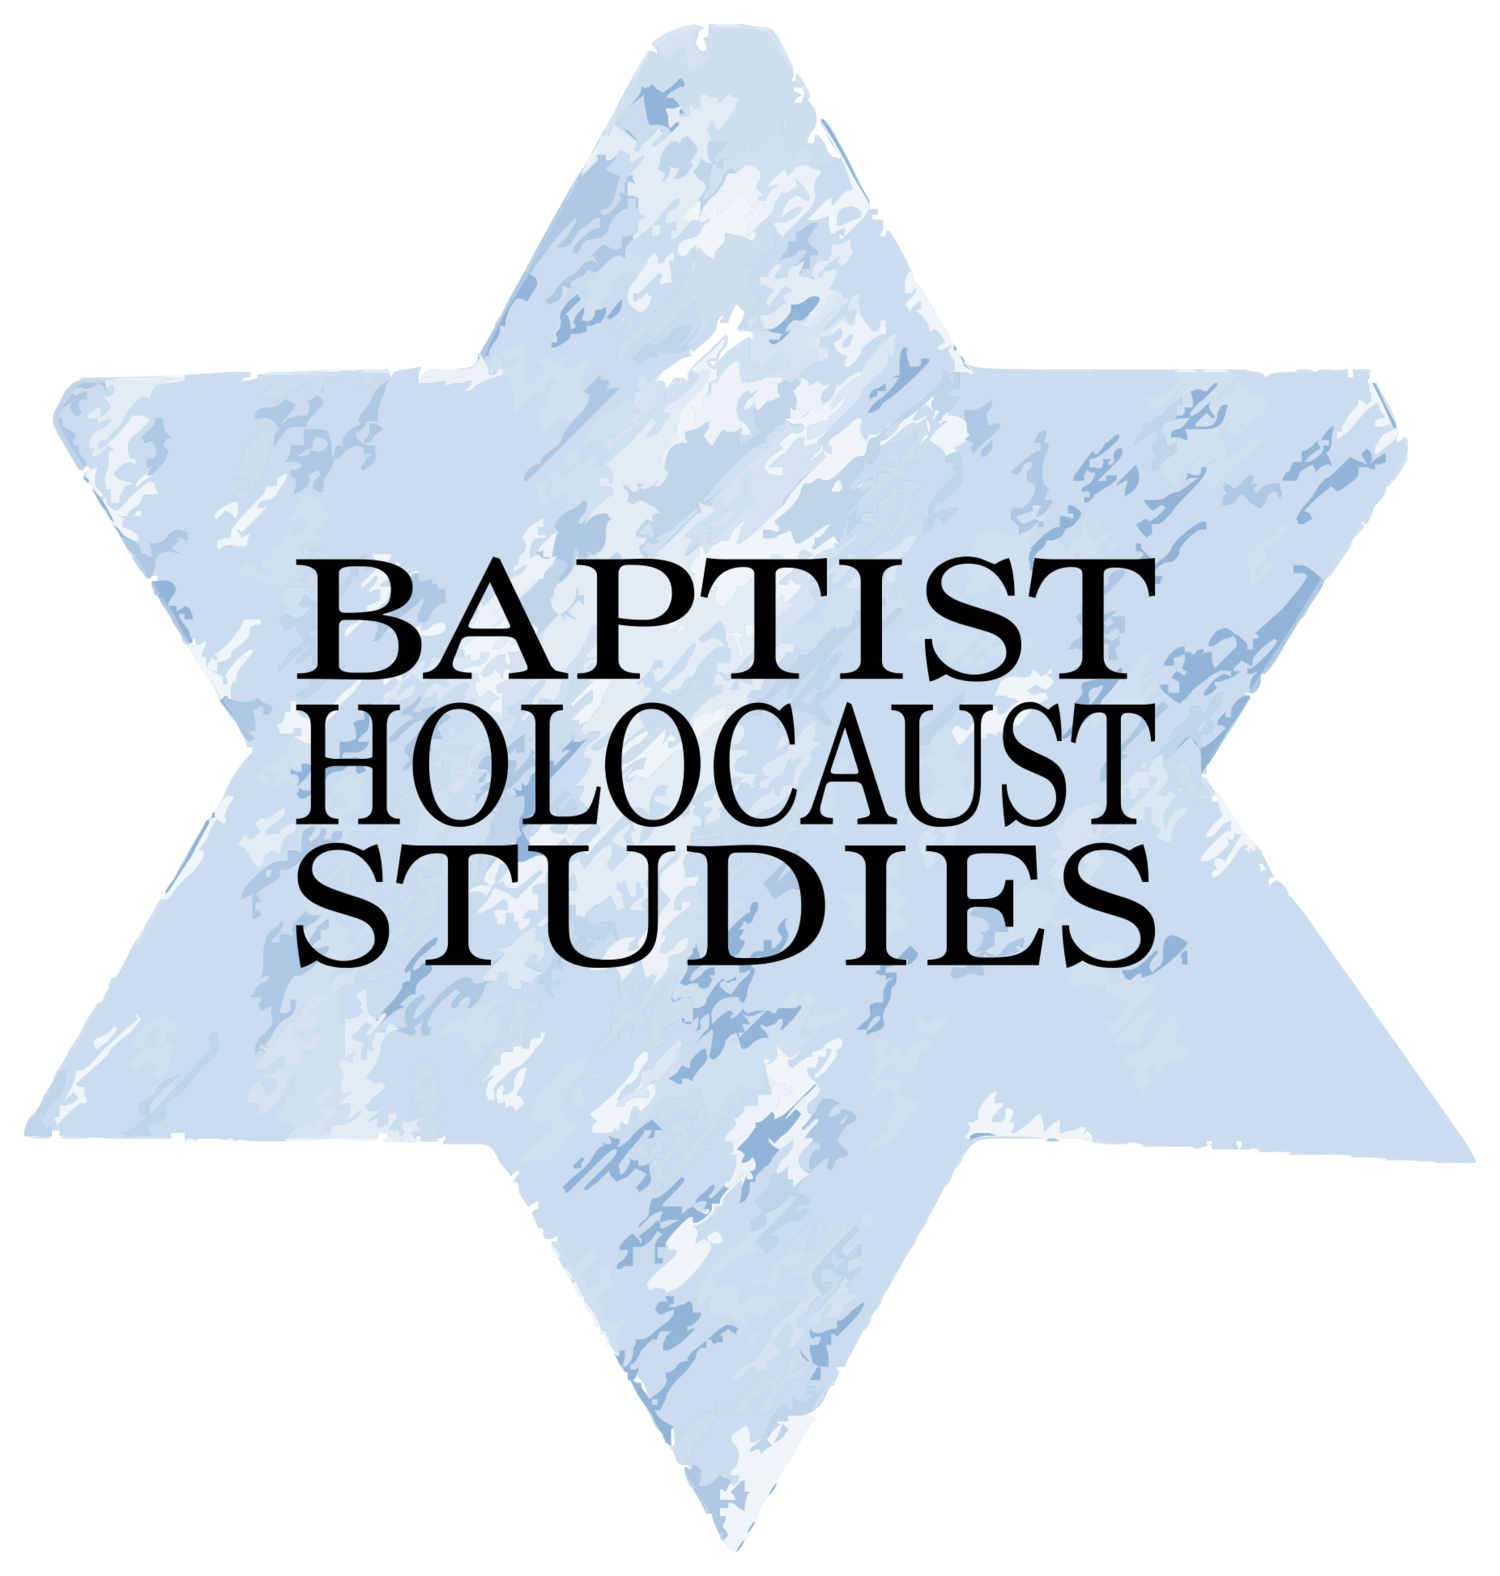 Baptist Holocaust Studies